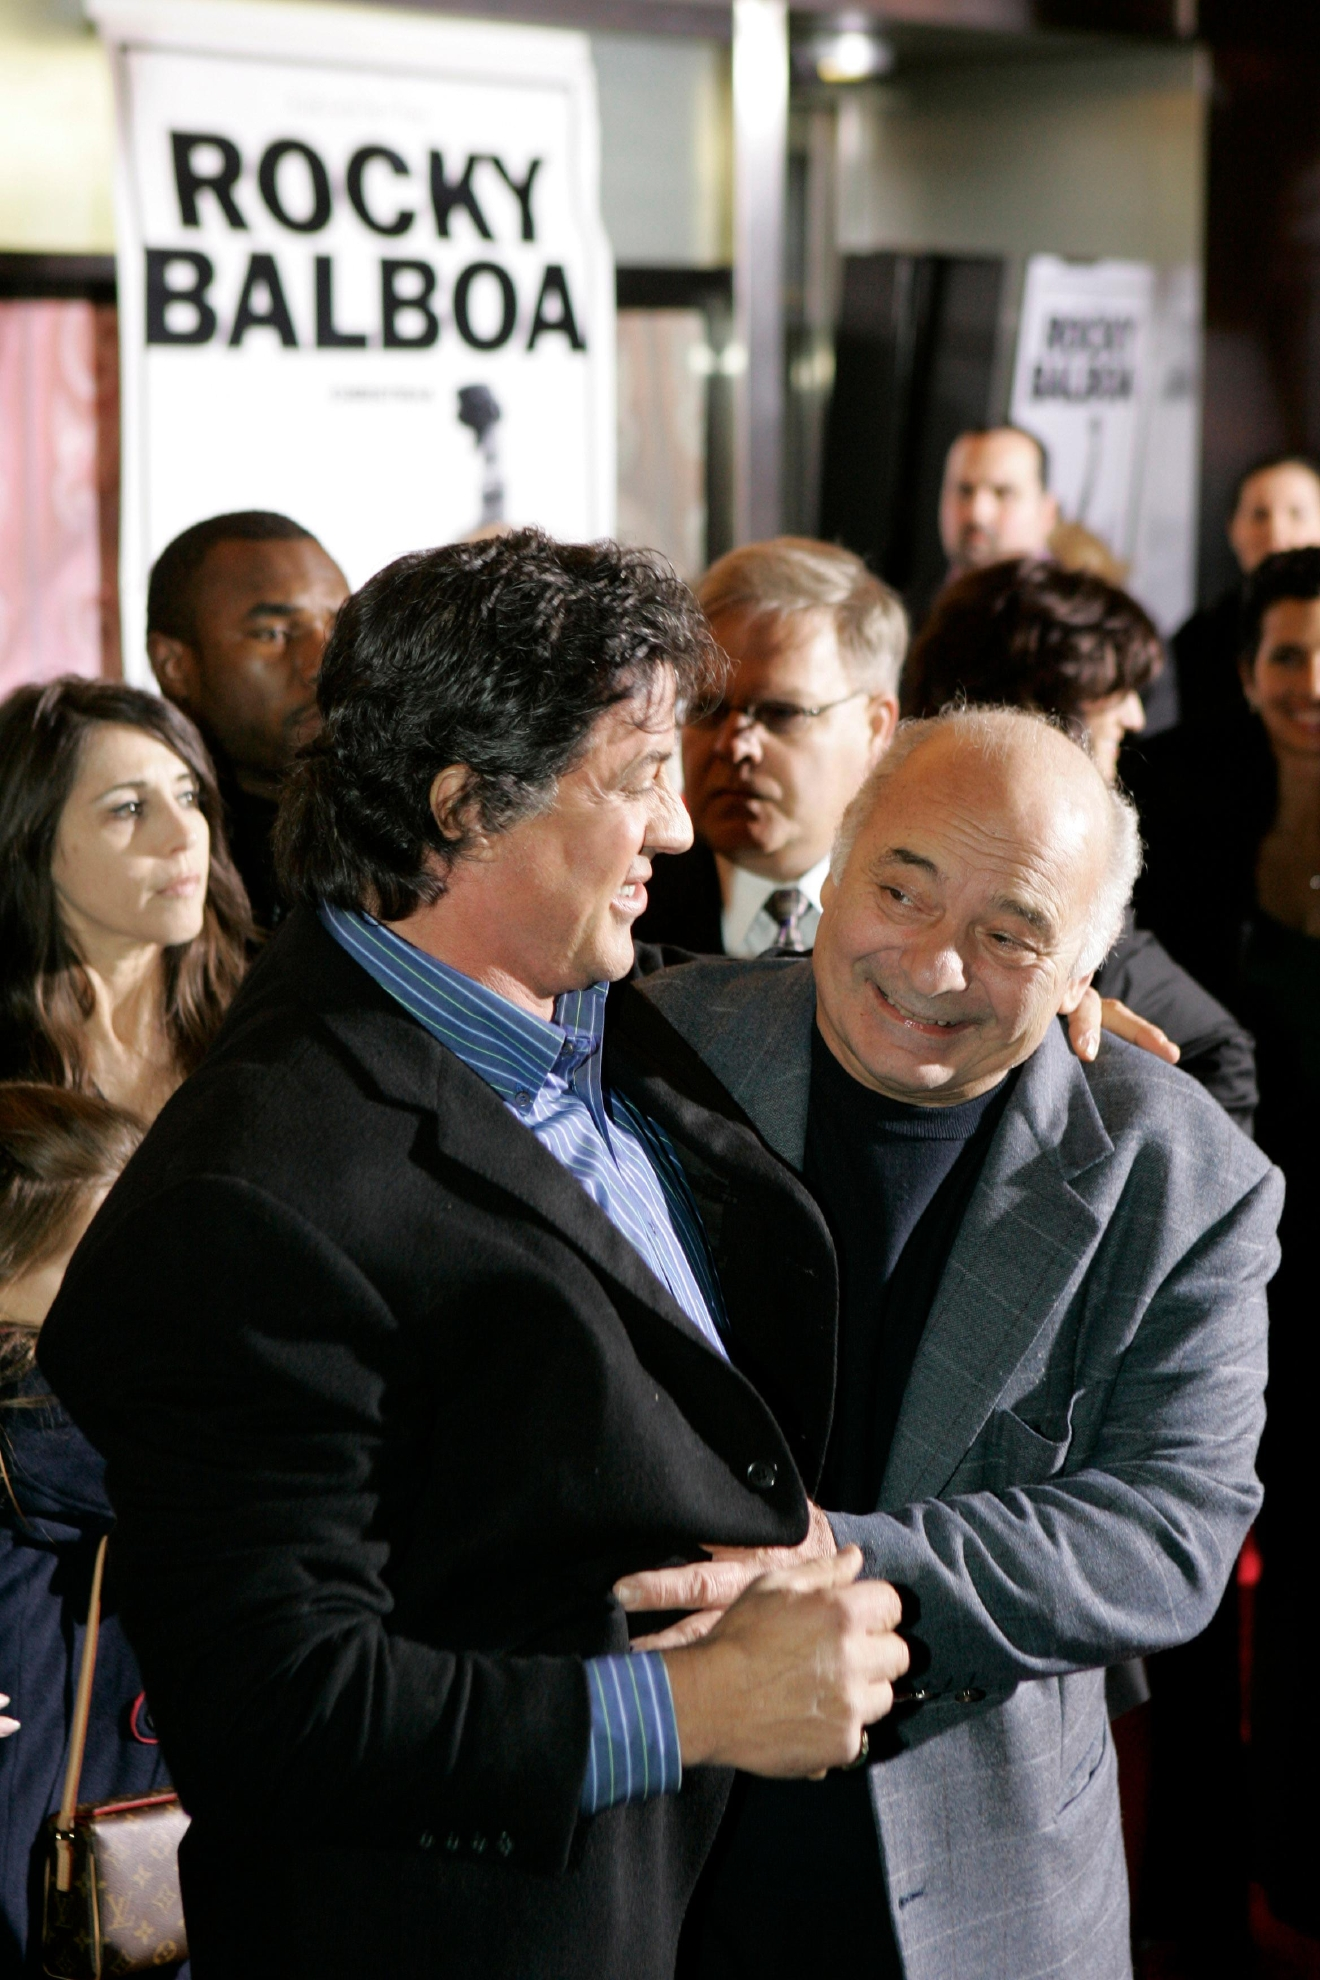 "FILE – In this Dec. 18, 2006, file photo, actor and screenwriter Sylvester Stallone, left, and his ""Rocky"" co-star Burt Young, right, attend a premiere of the movie ""Rocky Balboa"" in Philadelphia. Four decades after the Nov. 21, 1976, premiere of ""Rocky,"" the movie's reach is international, and the title character's underdog tale of determination, grit and sleepy-eyed charm still resonates with fans. (AP Photo/Matt Rourke, File)"